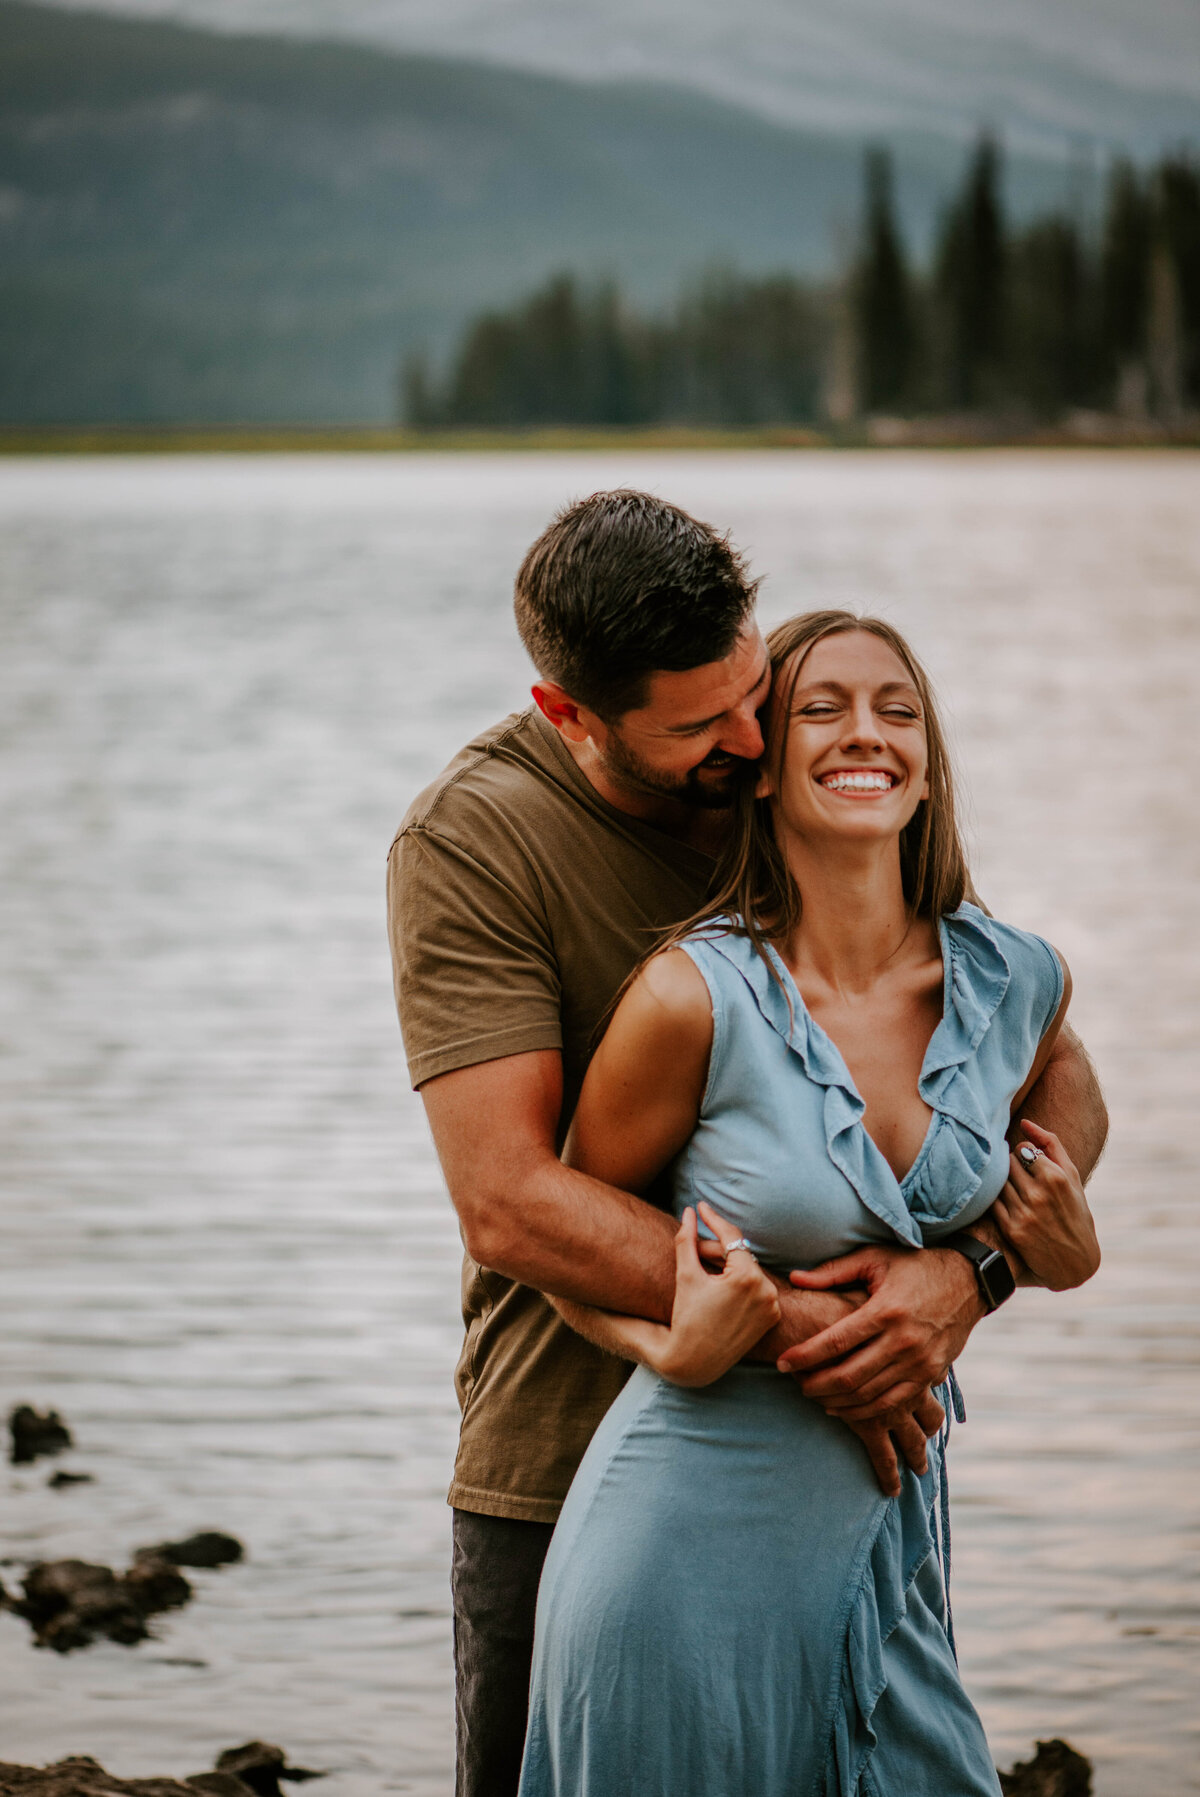 sparks-lake-oregon-couple-photographer-elopement-bend-lakes-bachelor-sisters-sunset-6277